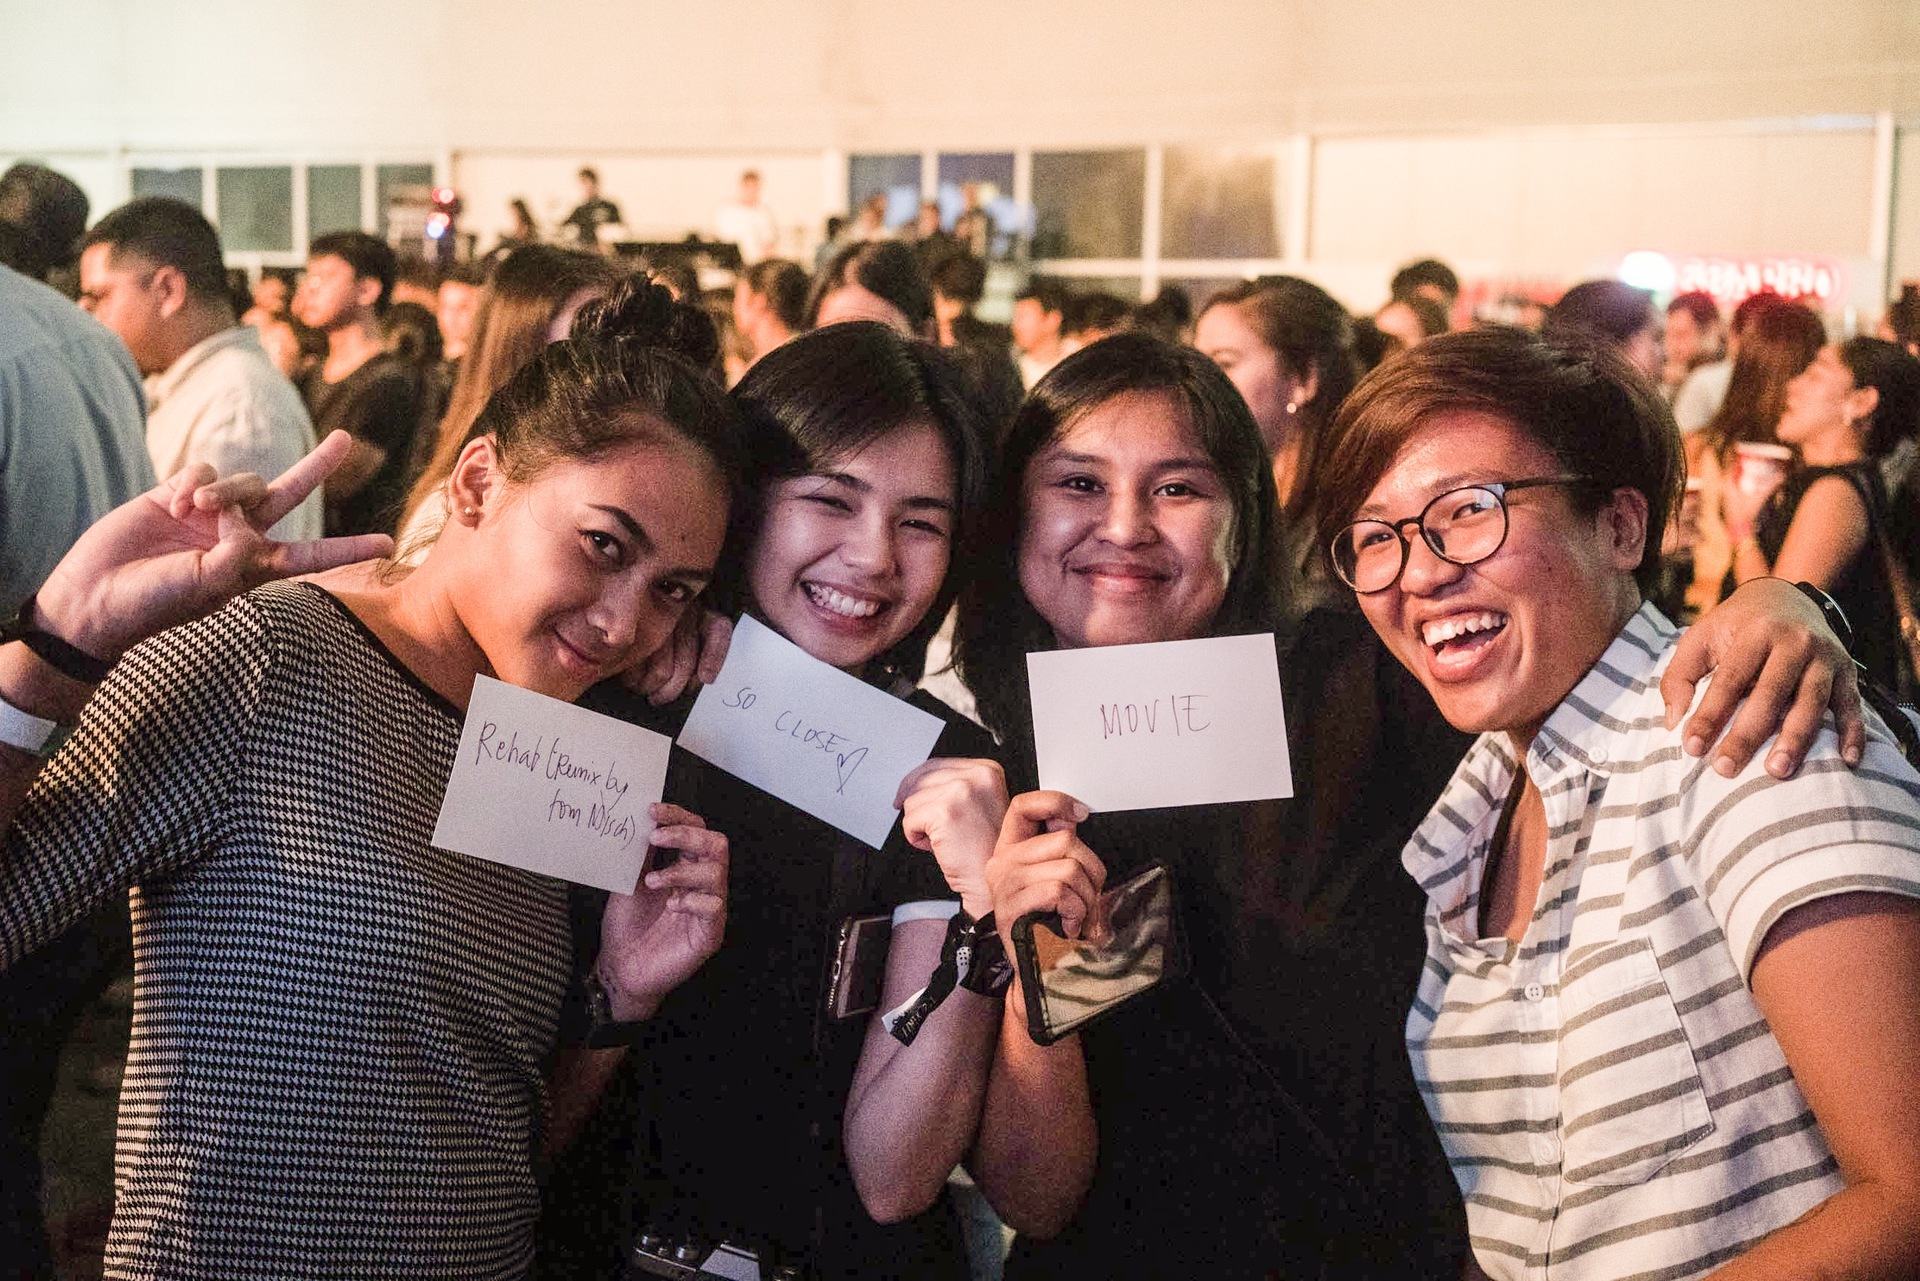 d6209fb82 Friends Cookie, Mida, and Issa have long been avid fans of Tom Misch and  definitely wouldn't have missed the chance to see him live for the world.